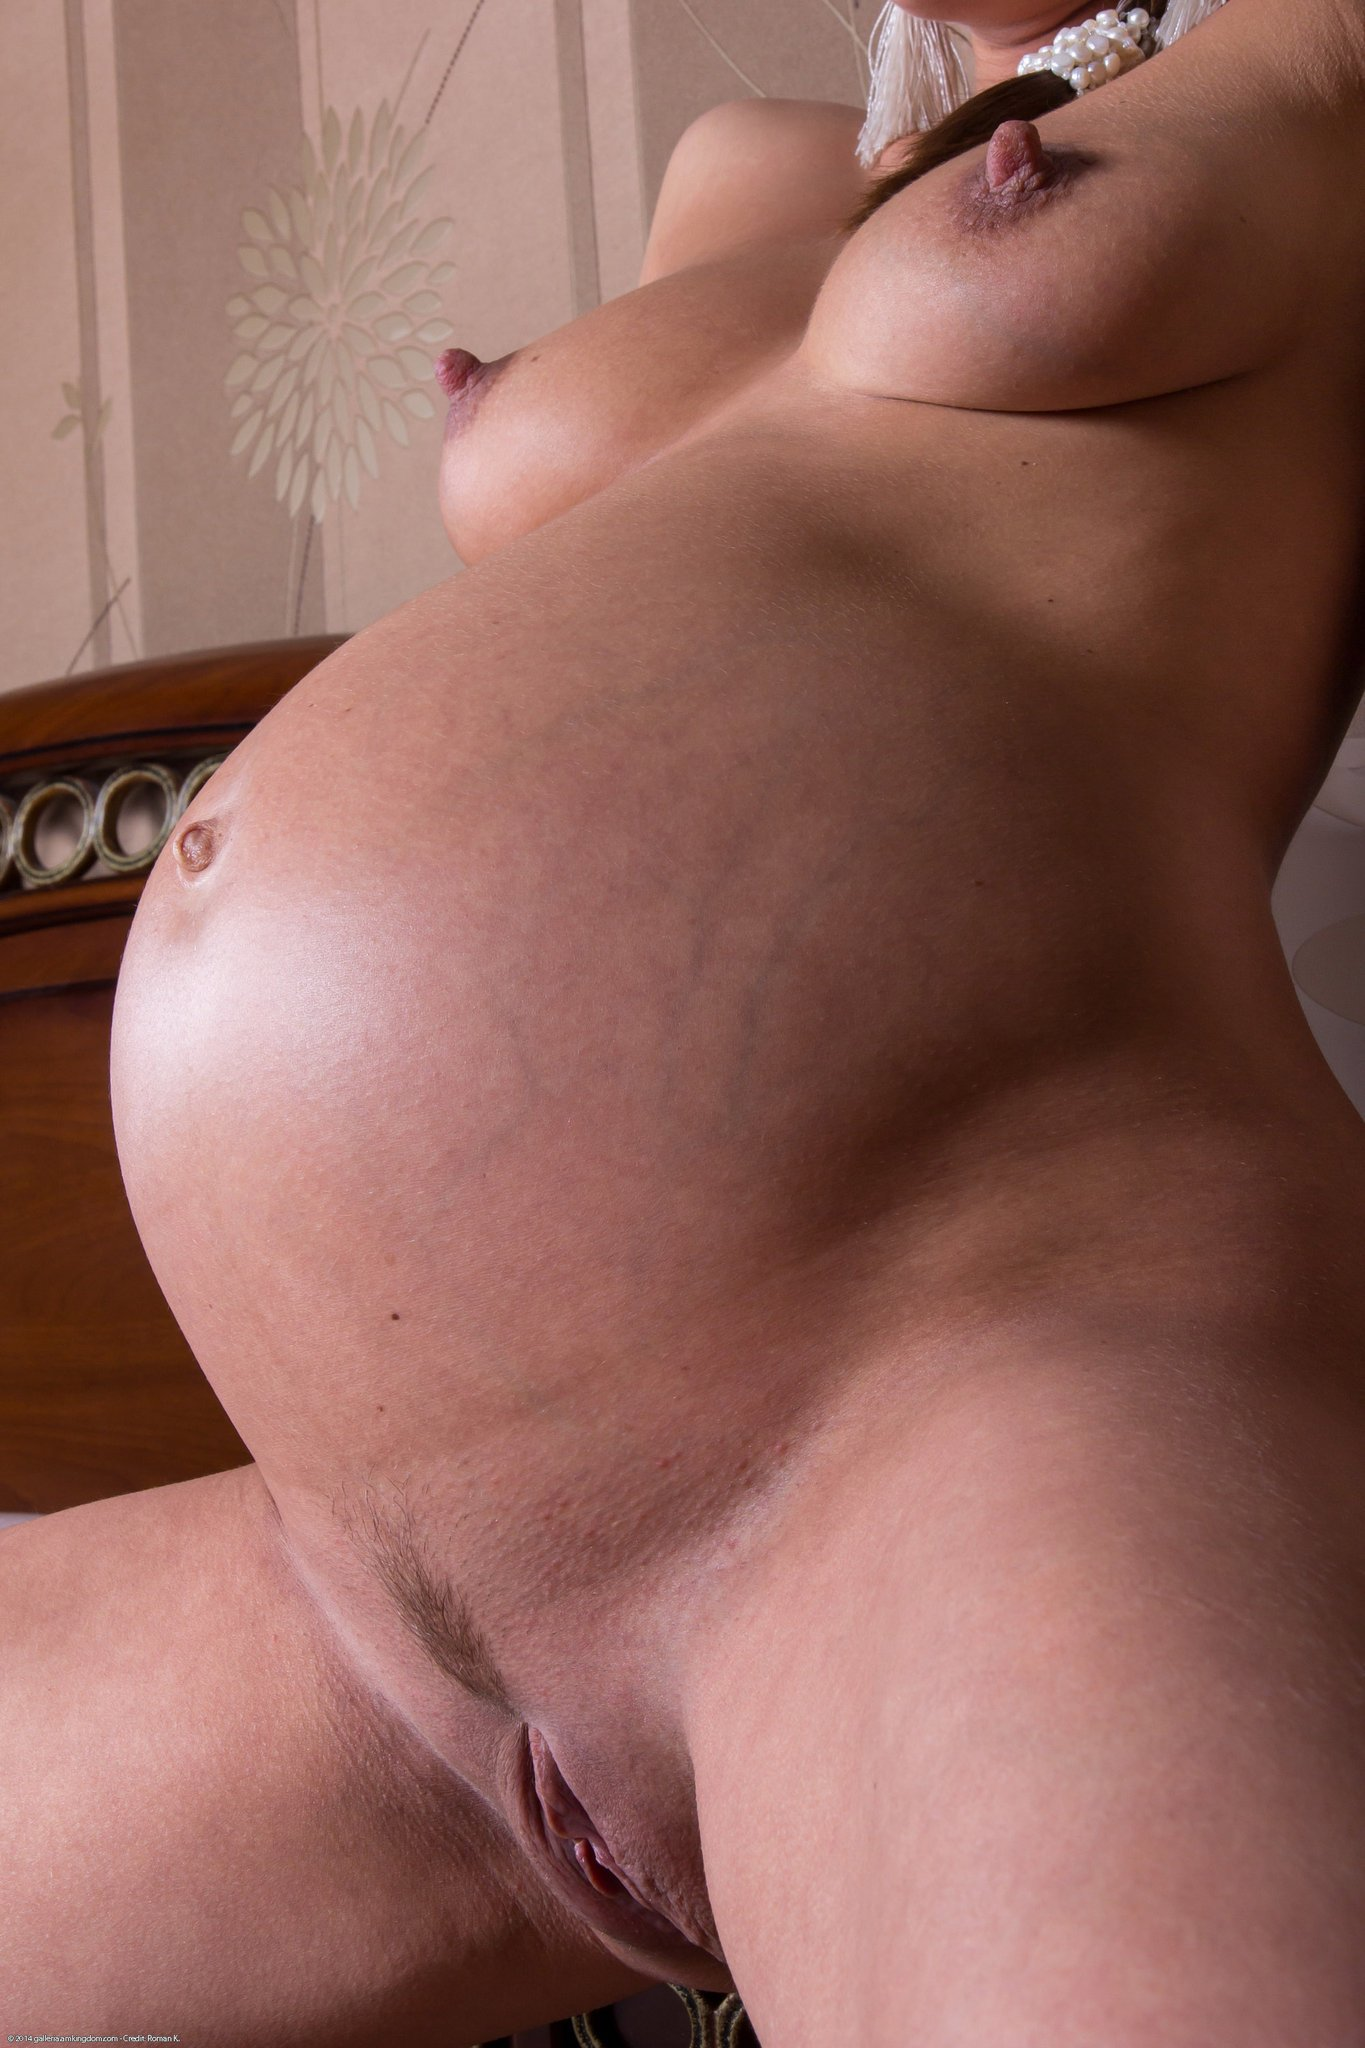 Atomic Milf Pregnant Anal Beads And Pussy Cum Extreme Scat Piss Porn And Japan Toilet Voyeur